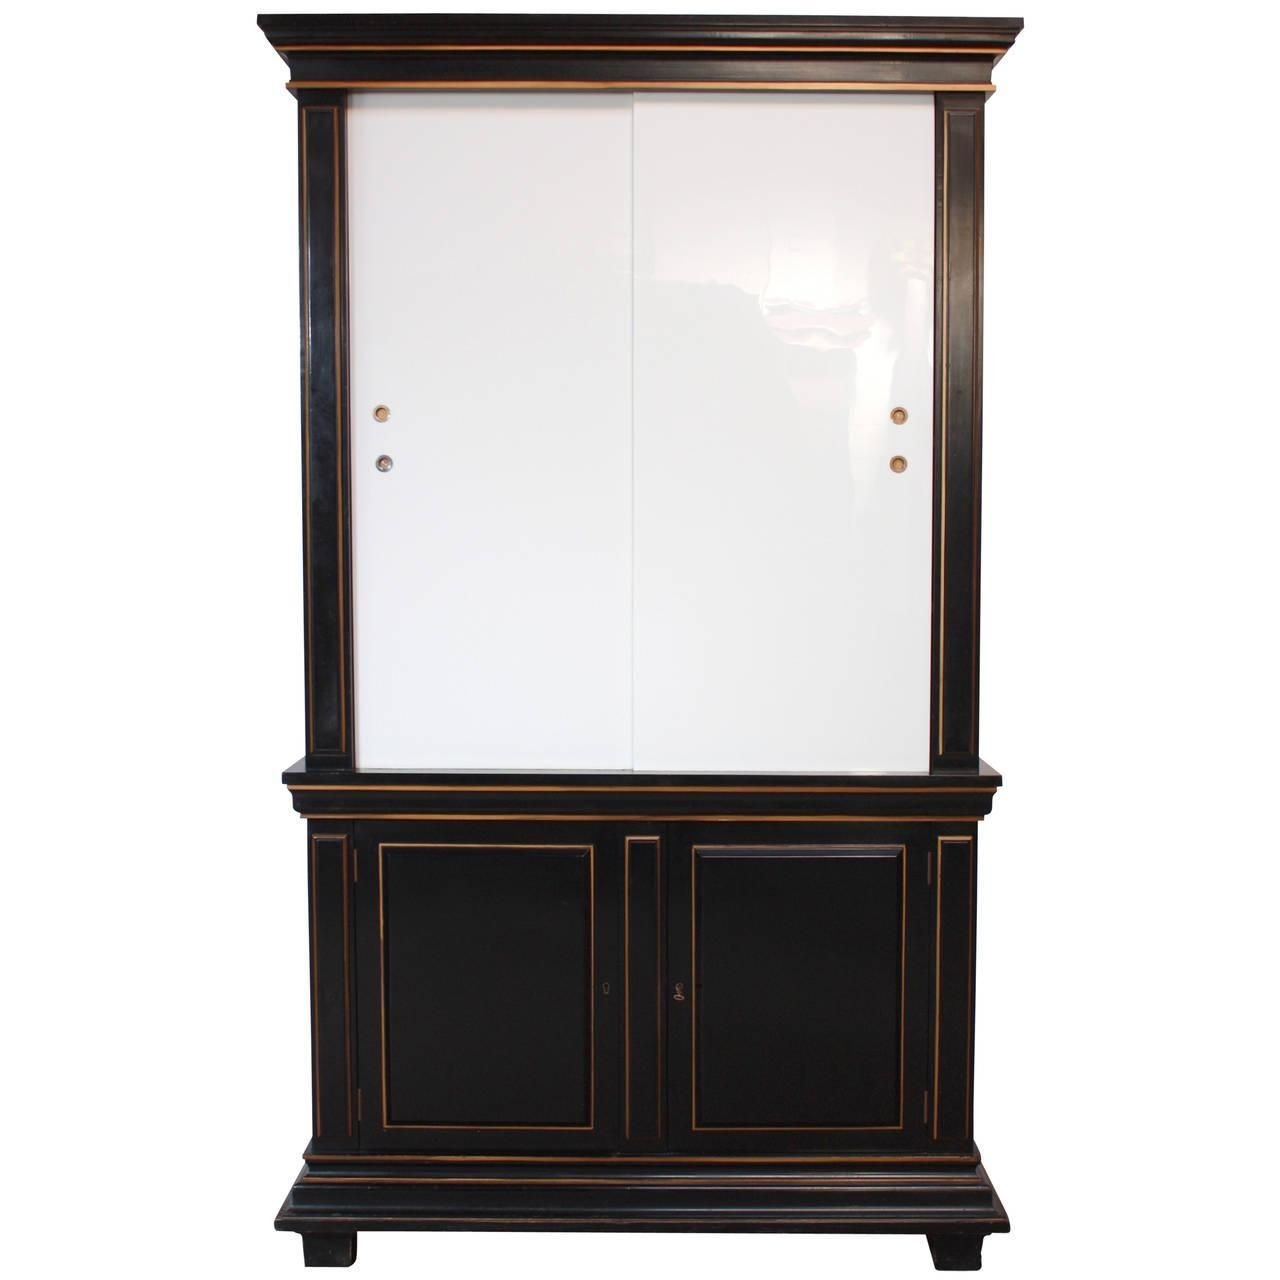 For Sale On   This Majestic Armoire In The Style Of James Mont Features Two  Sliding Milk Glass Doors, A Black Lacquered Frame, Three Adjustable Shelves  On ...